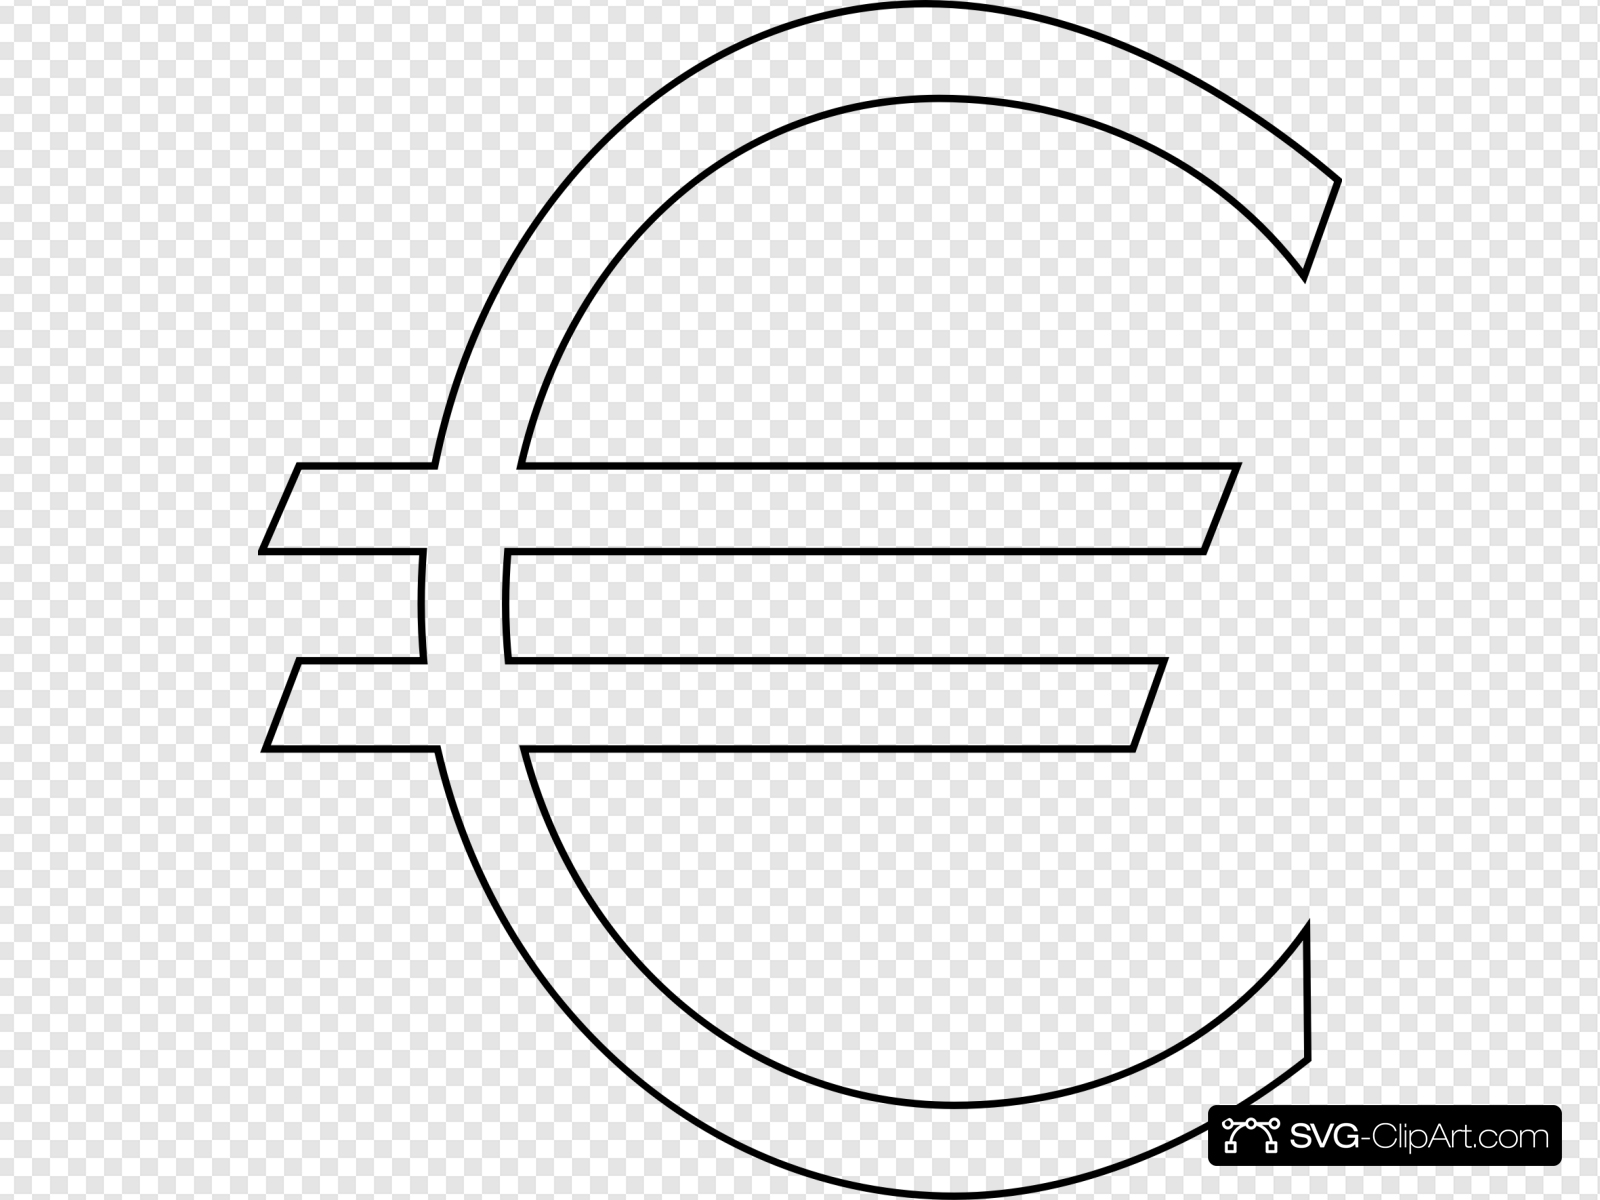 Euro Sign Outline Clip art, Icon and SVG.